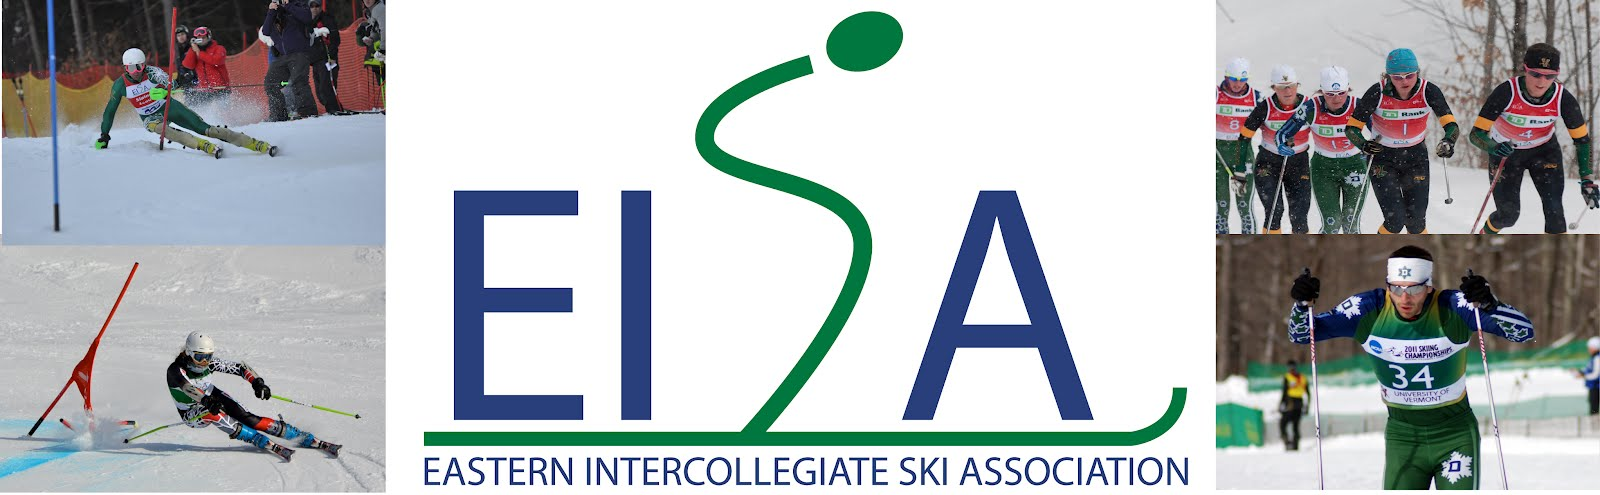 EISA Skiing